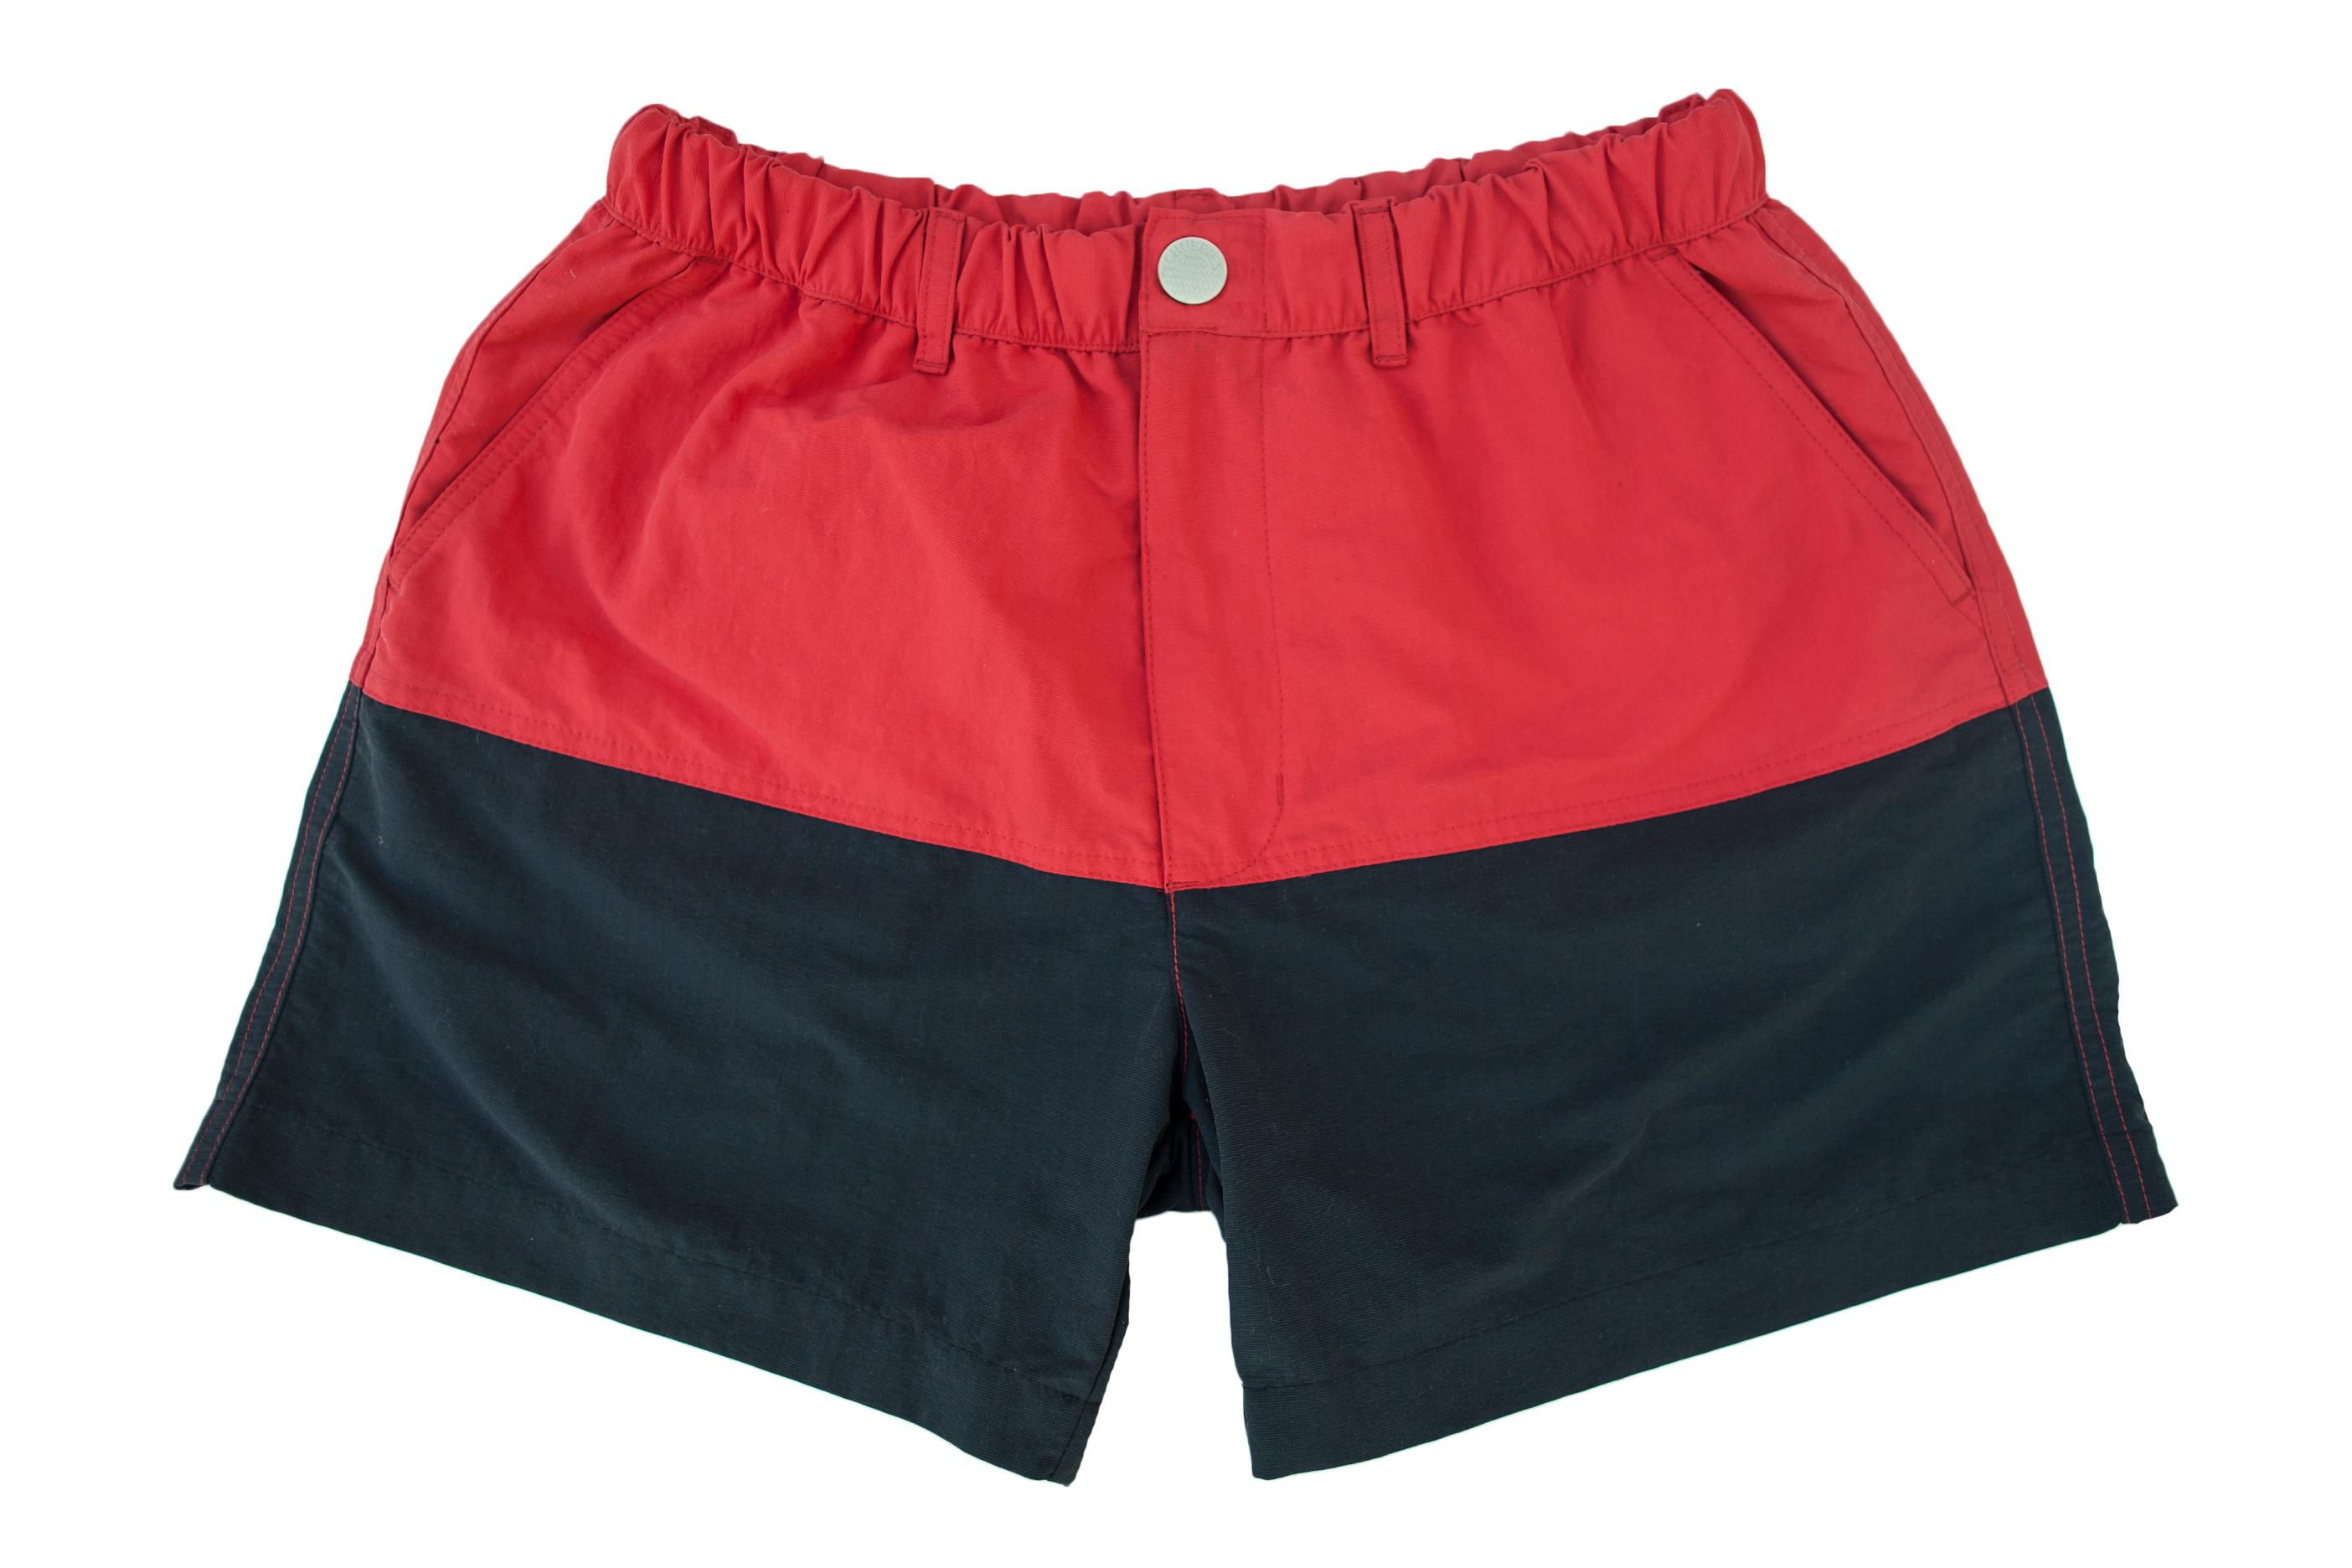 Chubbies red_black